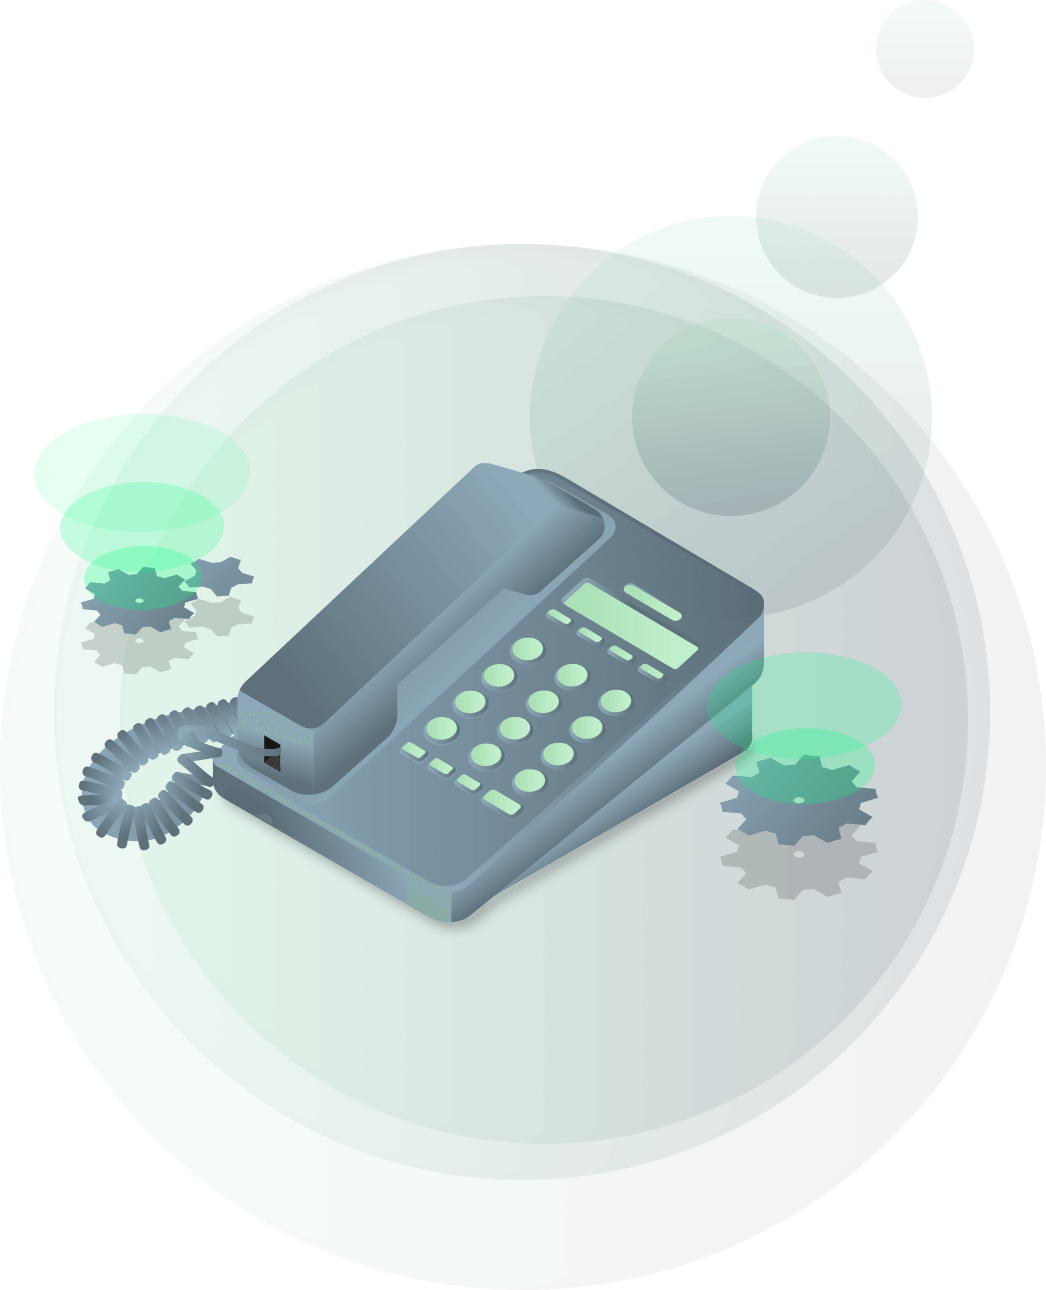 illustration of a hosted phone system